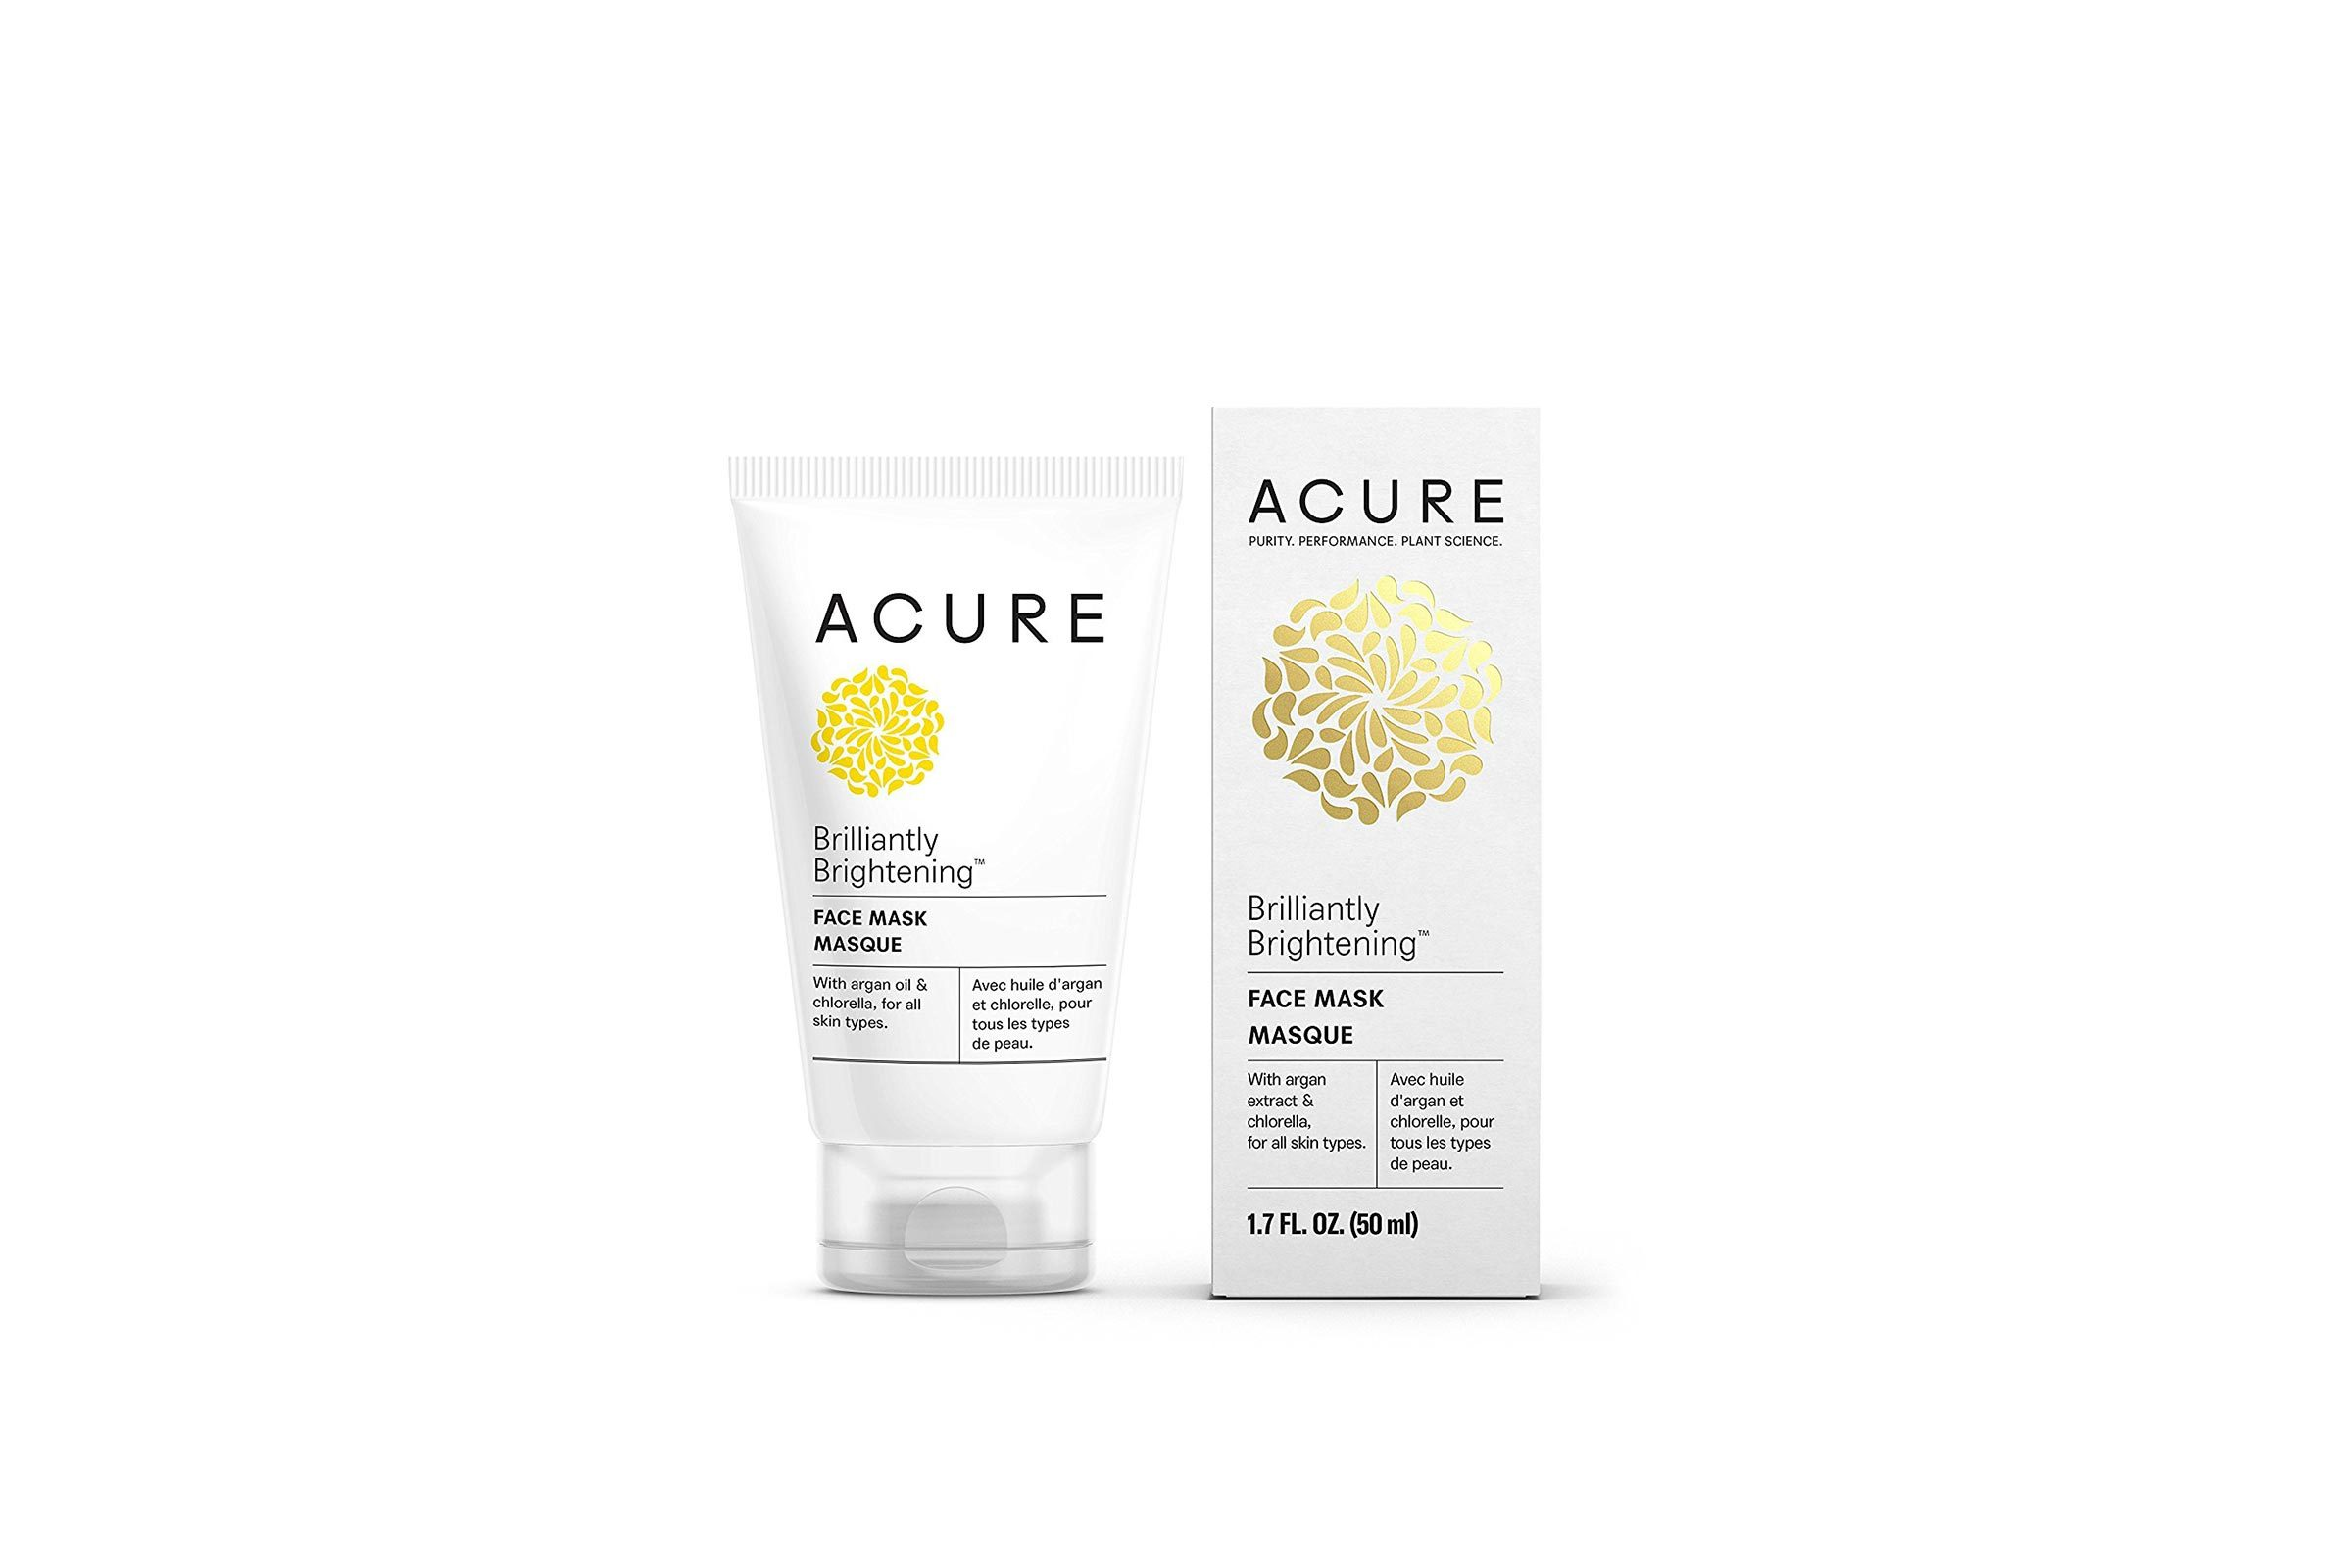 Acure [Brilliantly] Brightening Mask